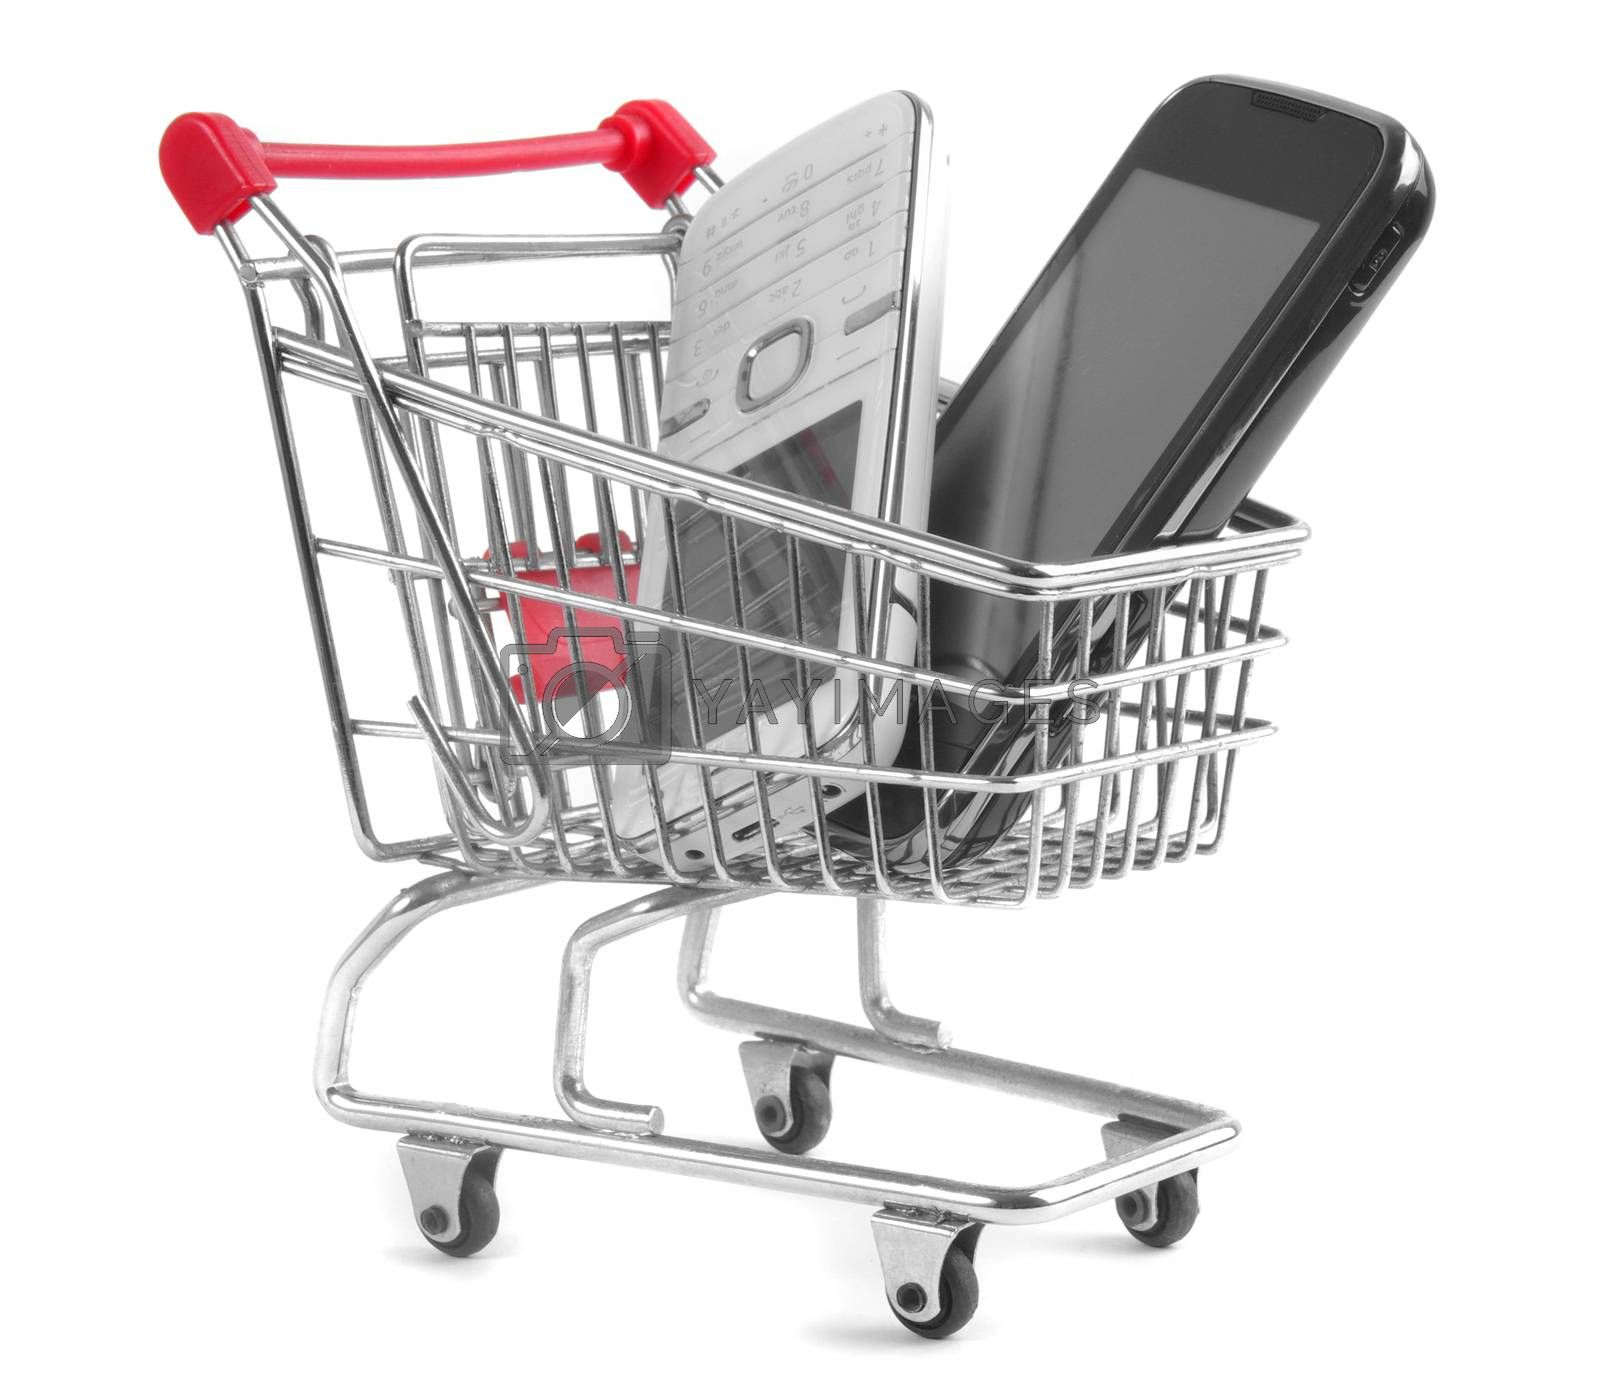 shopping trolley with cell phones isolated on white background